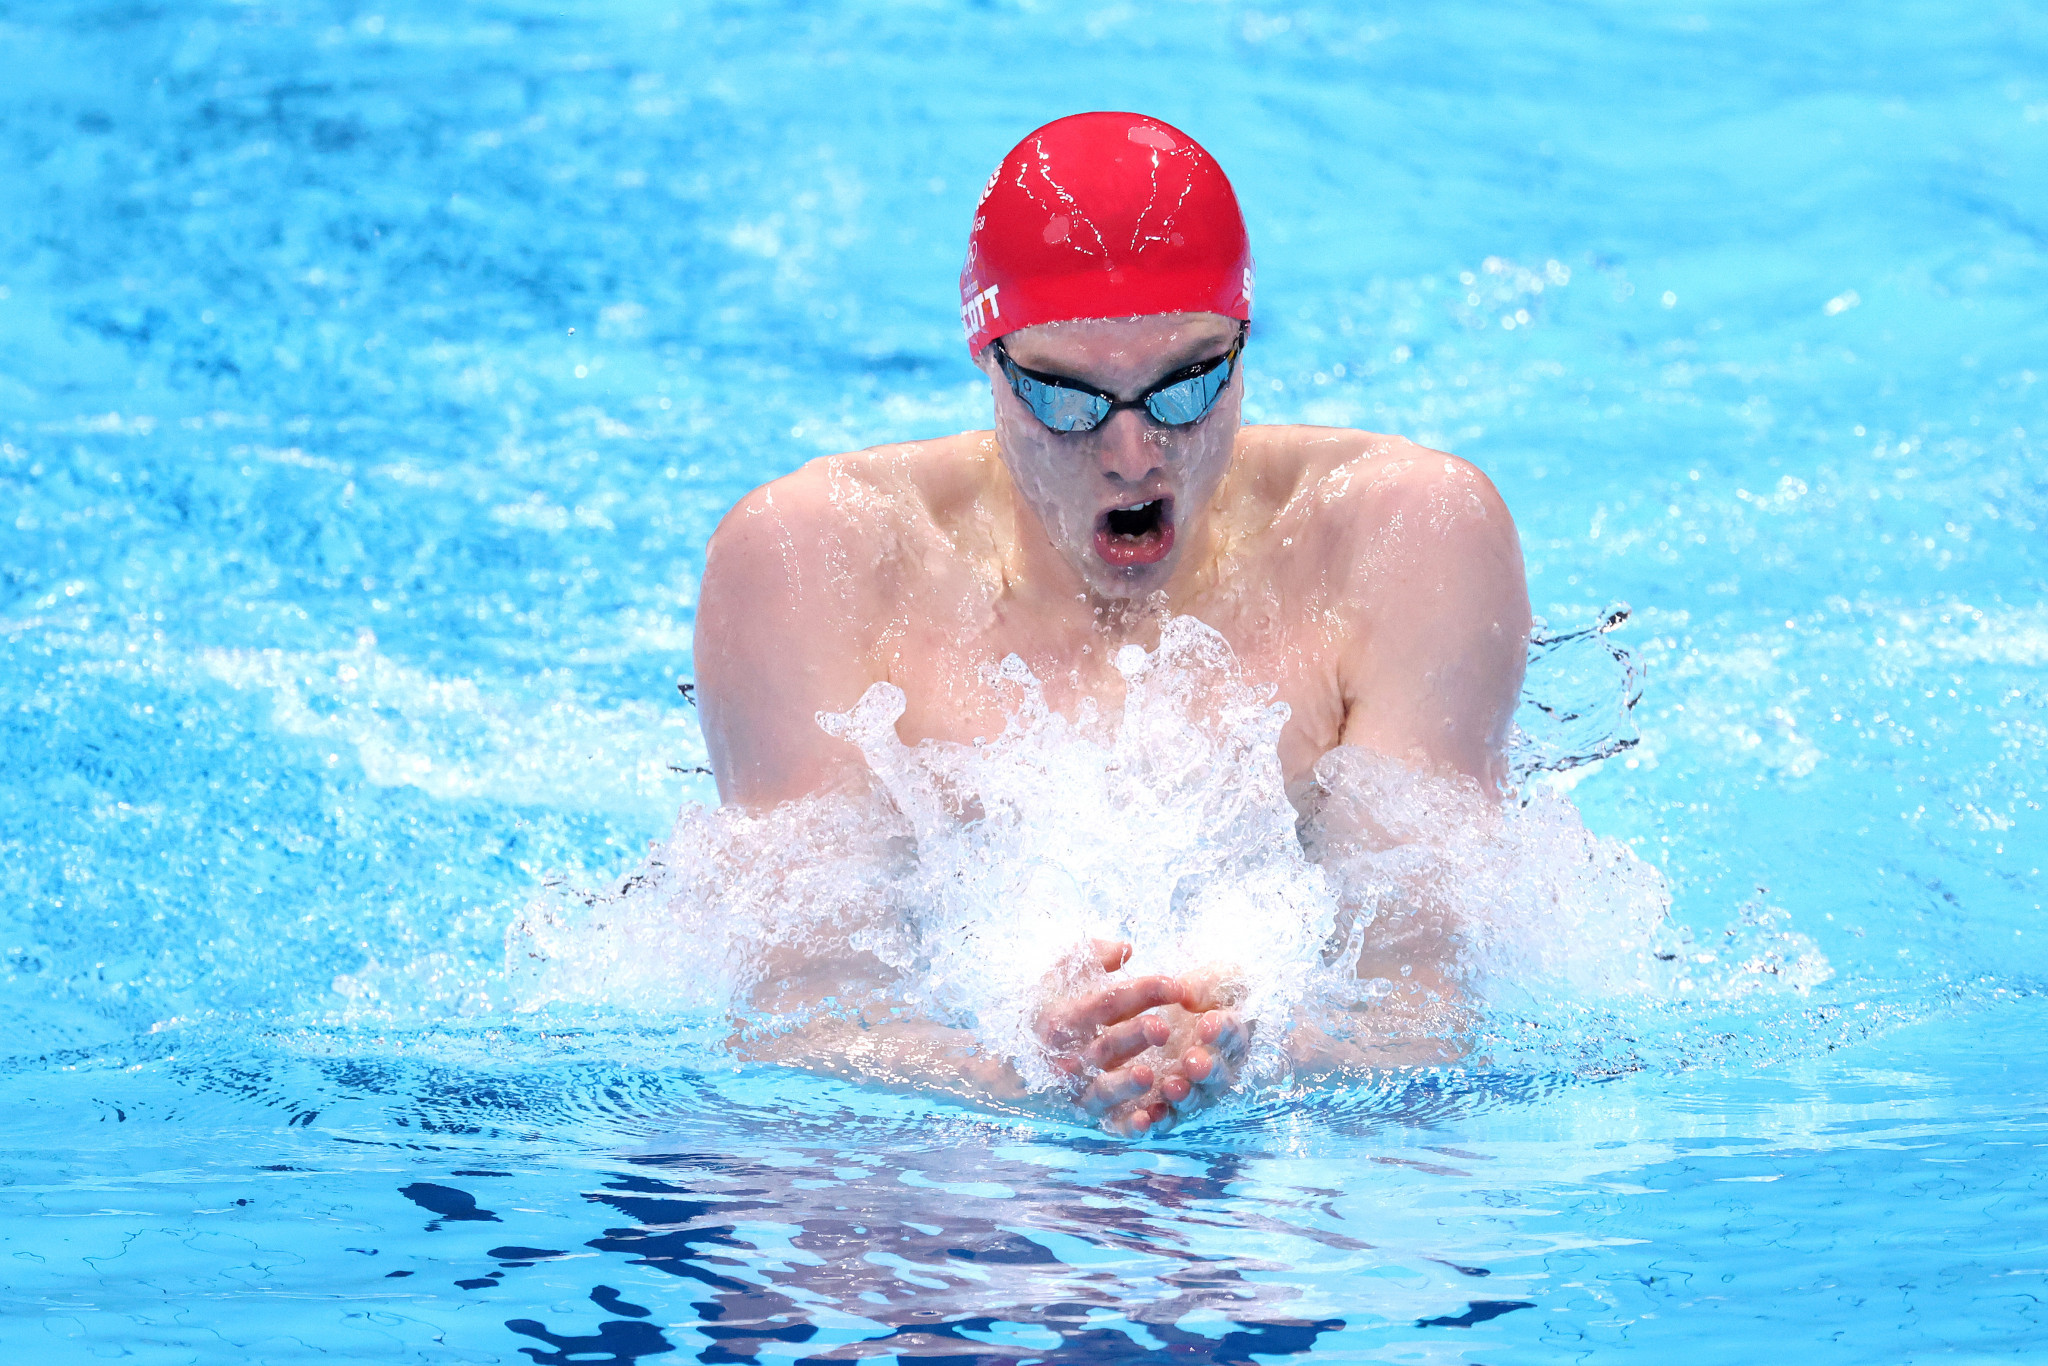 British swimmer Duncan Scott, winner of four Olympic medals at Tokyo 2020, including a gold, is among athletes based at the University of Stirling ©Getty Images